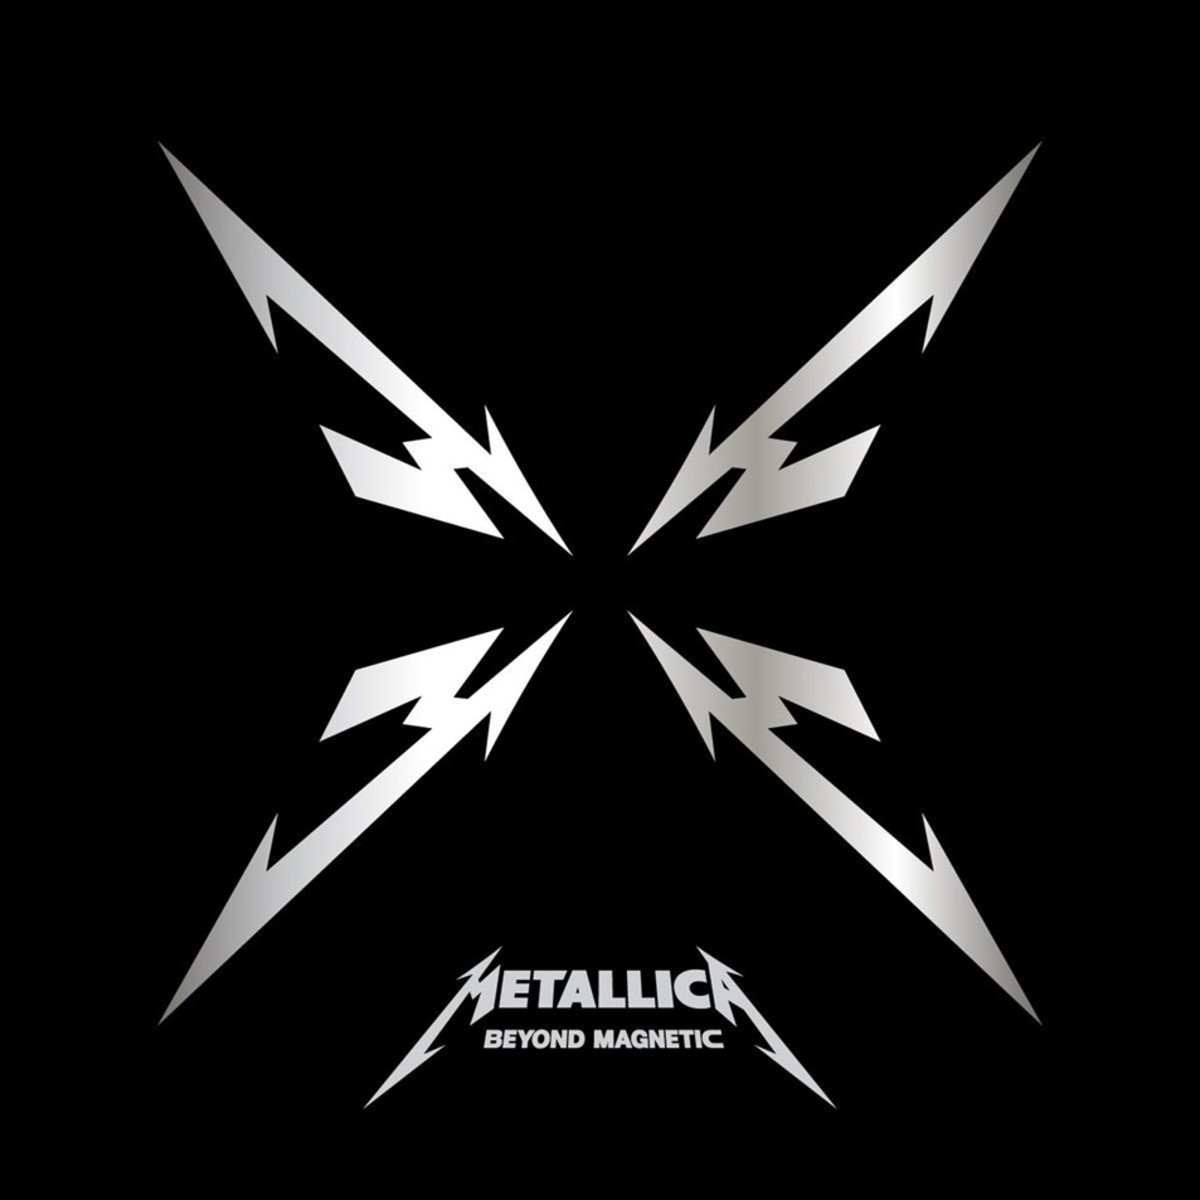 Metallica Beyond Magnetic-A Forgotten Mini Album